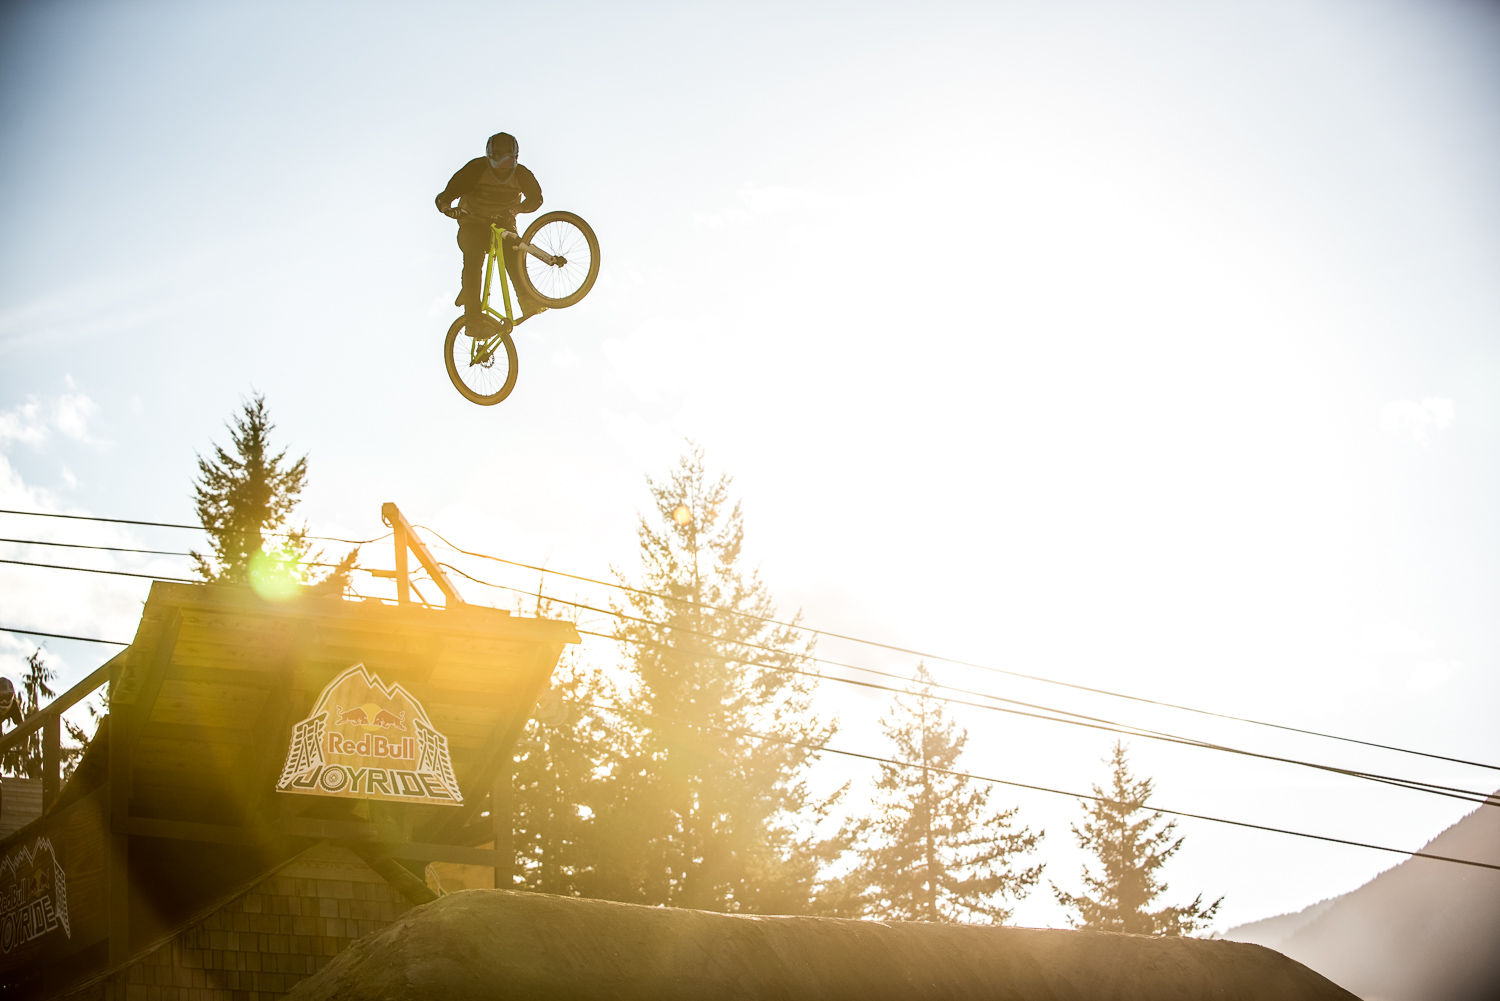 Josh Hult from the USA, on his debut Joyride appearance.